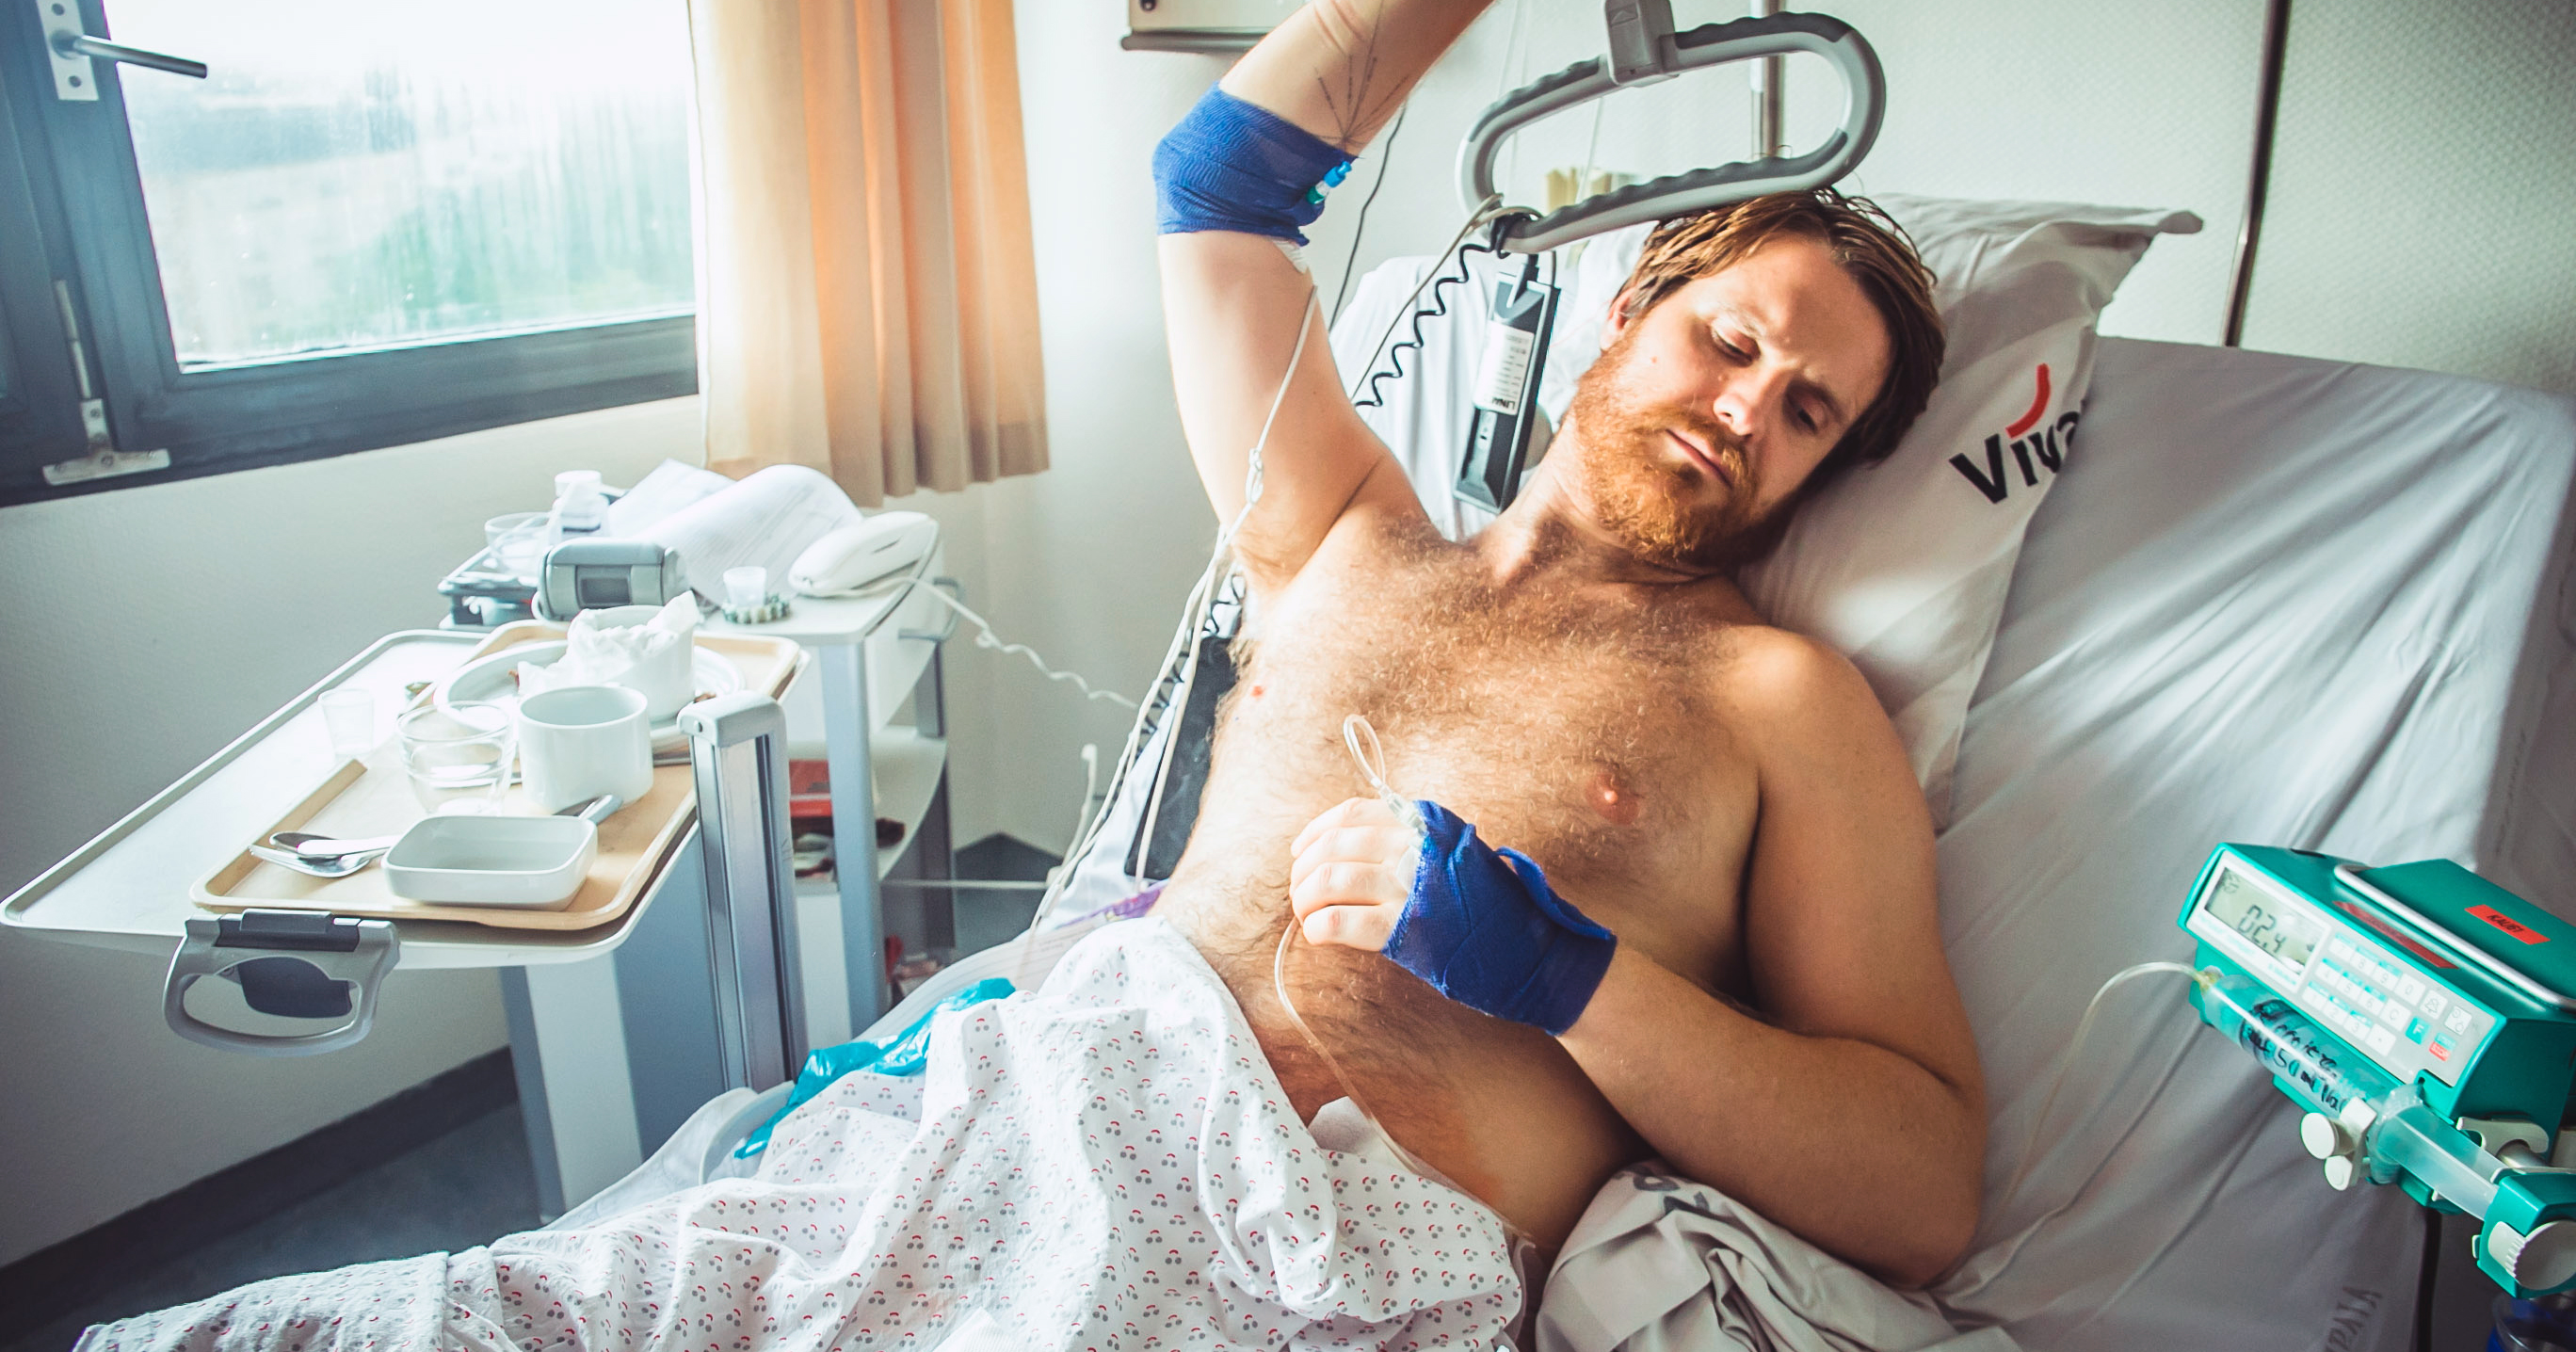 Danny Polaris in an hospital bed. Danny was hospitalised with life-threatening erection